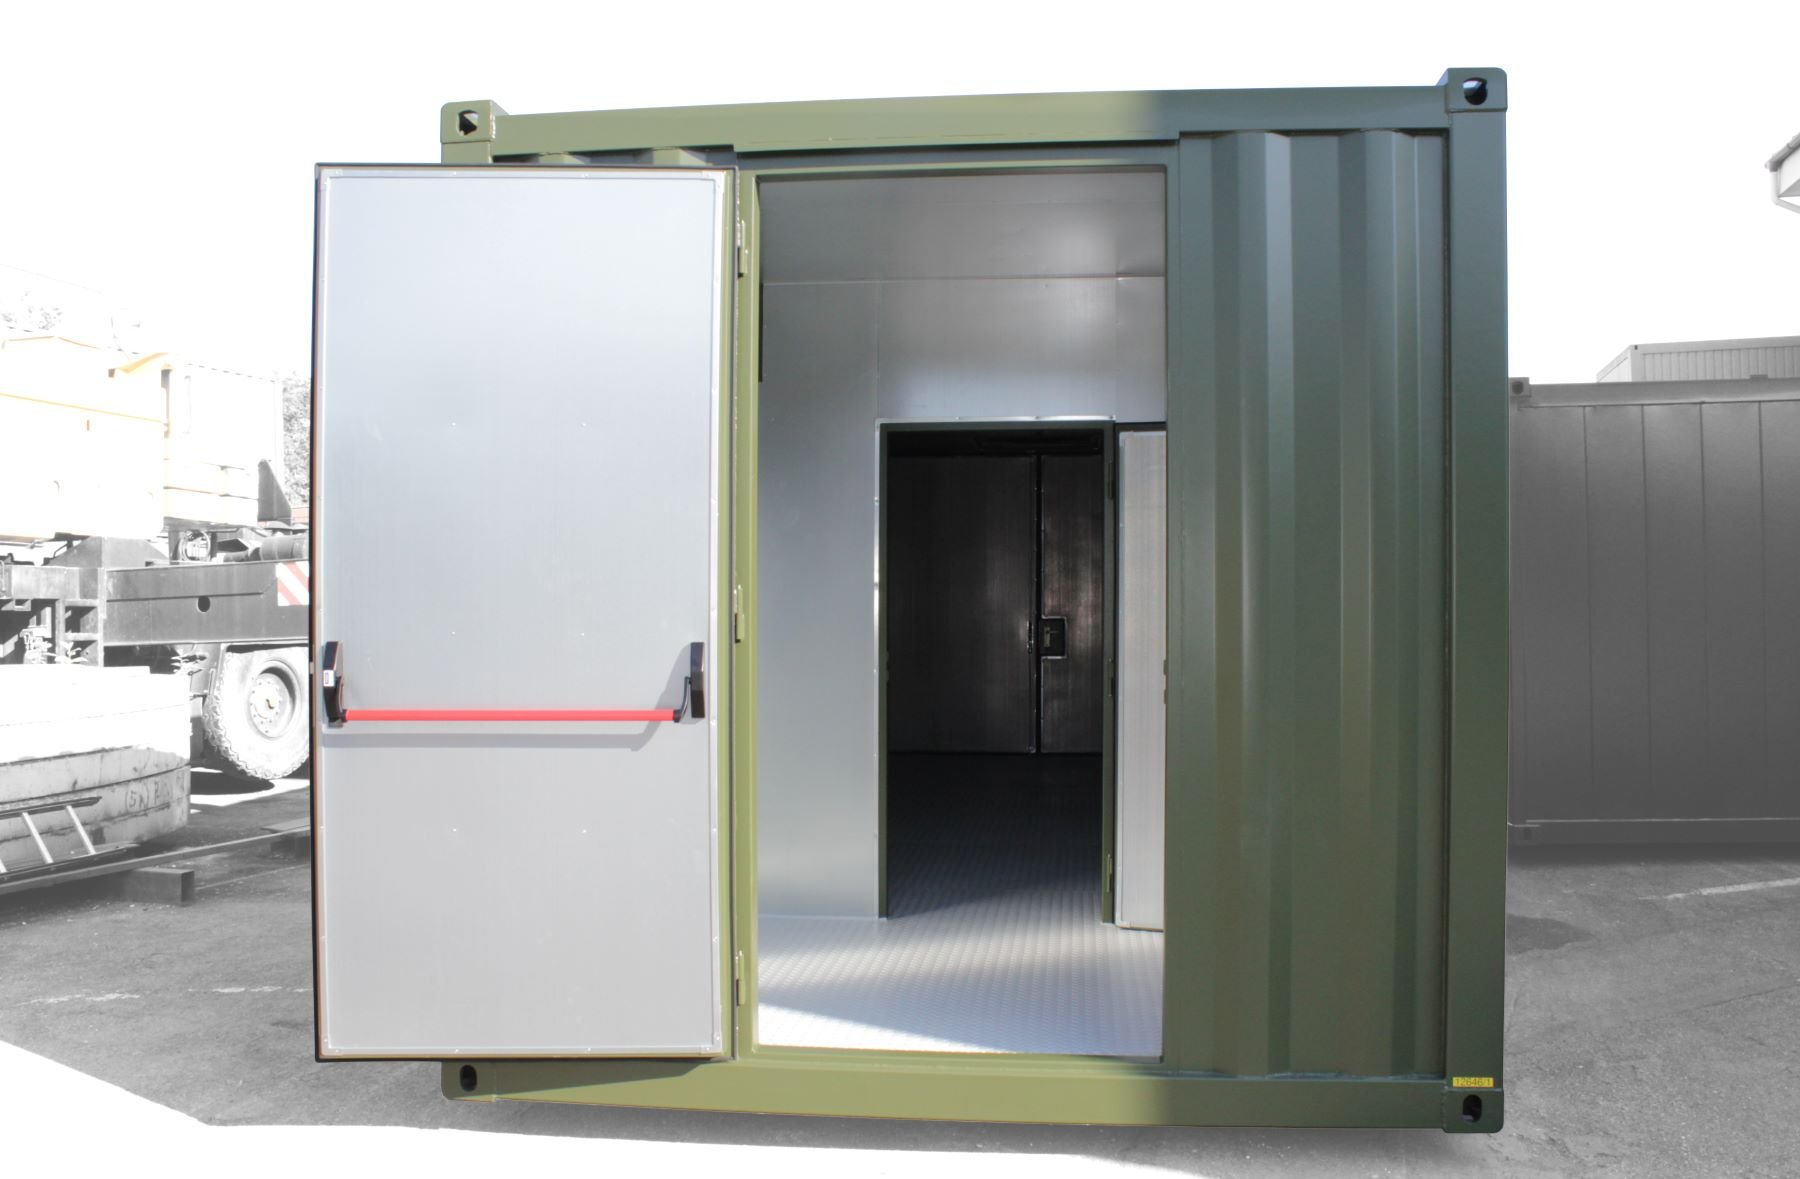 ABS intec - Technikcontainer Technikontainer Paniktuer mit Buegel Trennwand kl - Elektro-Container